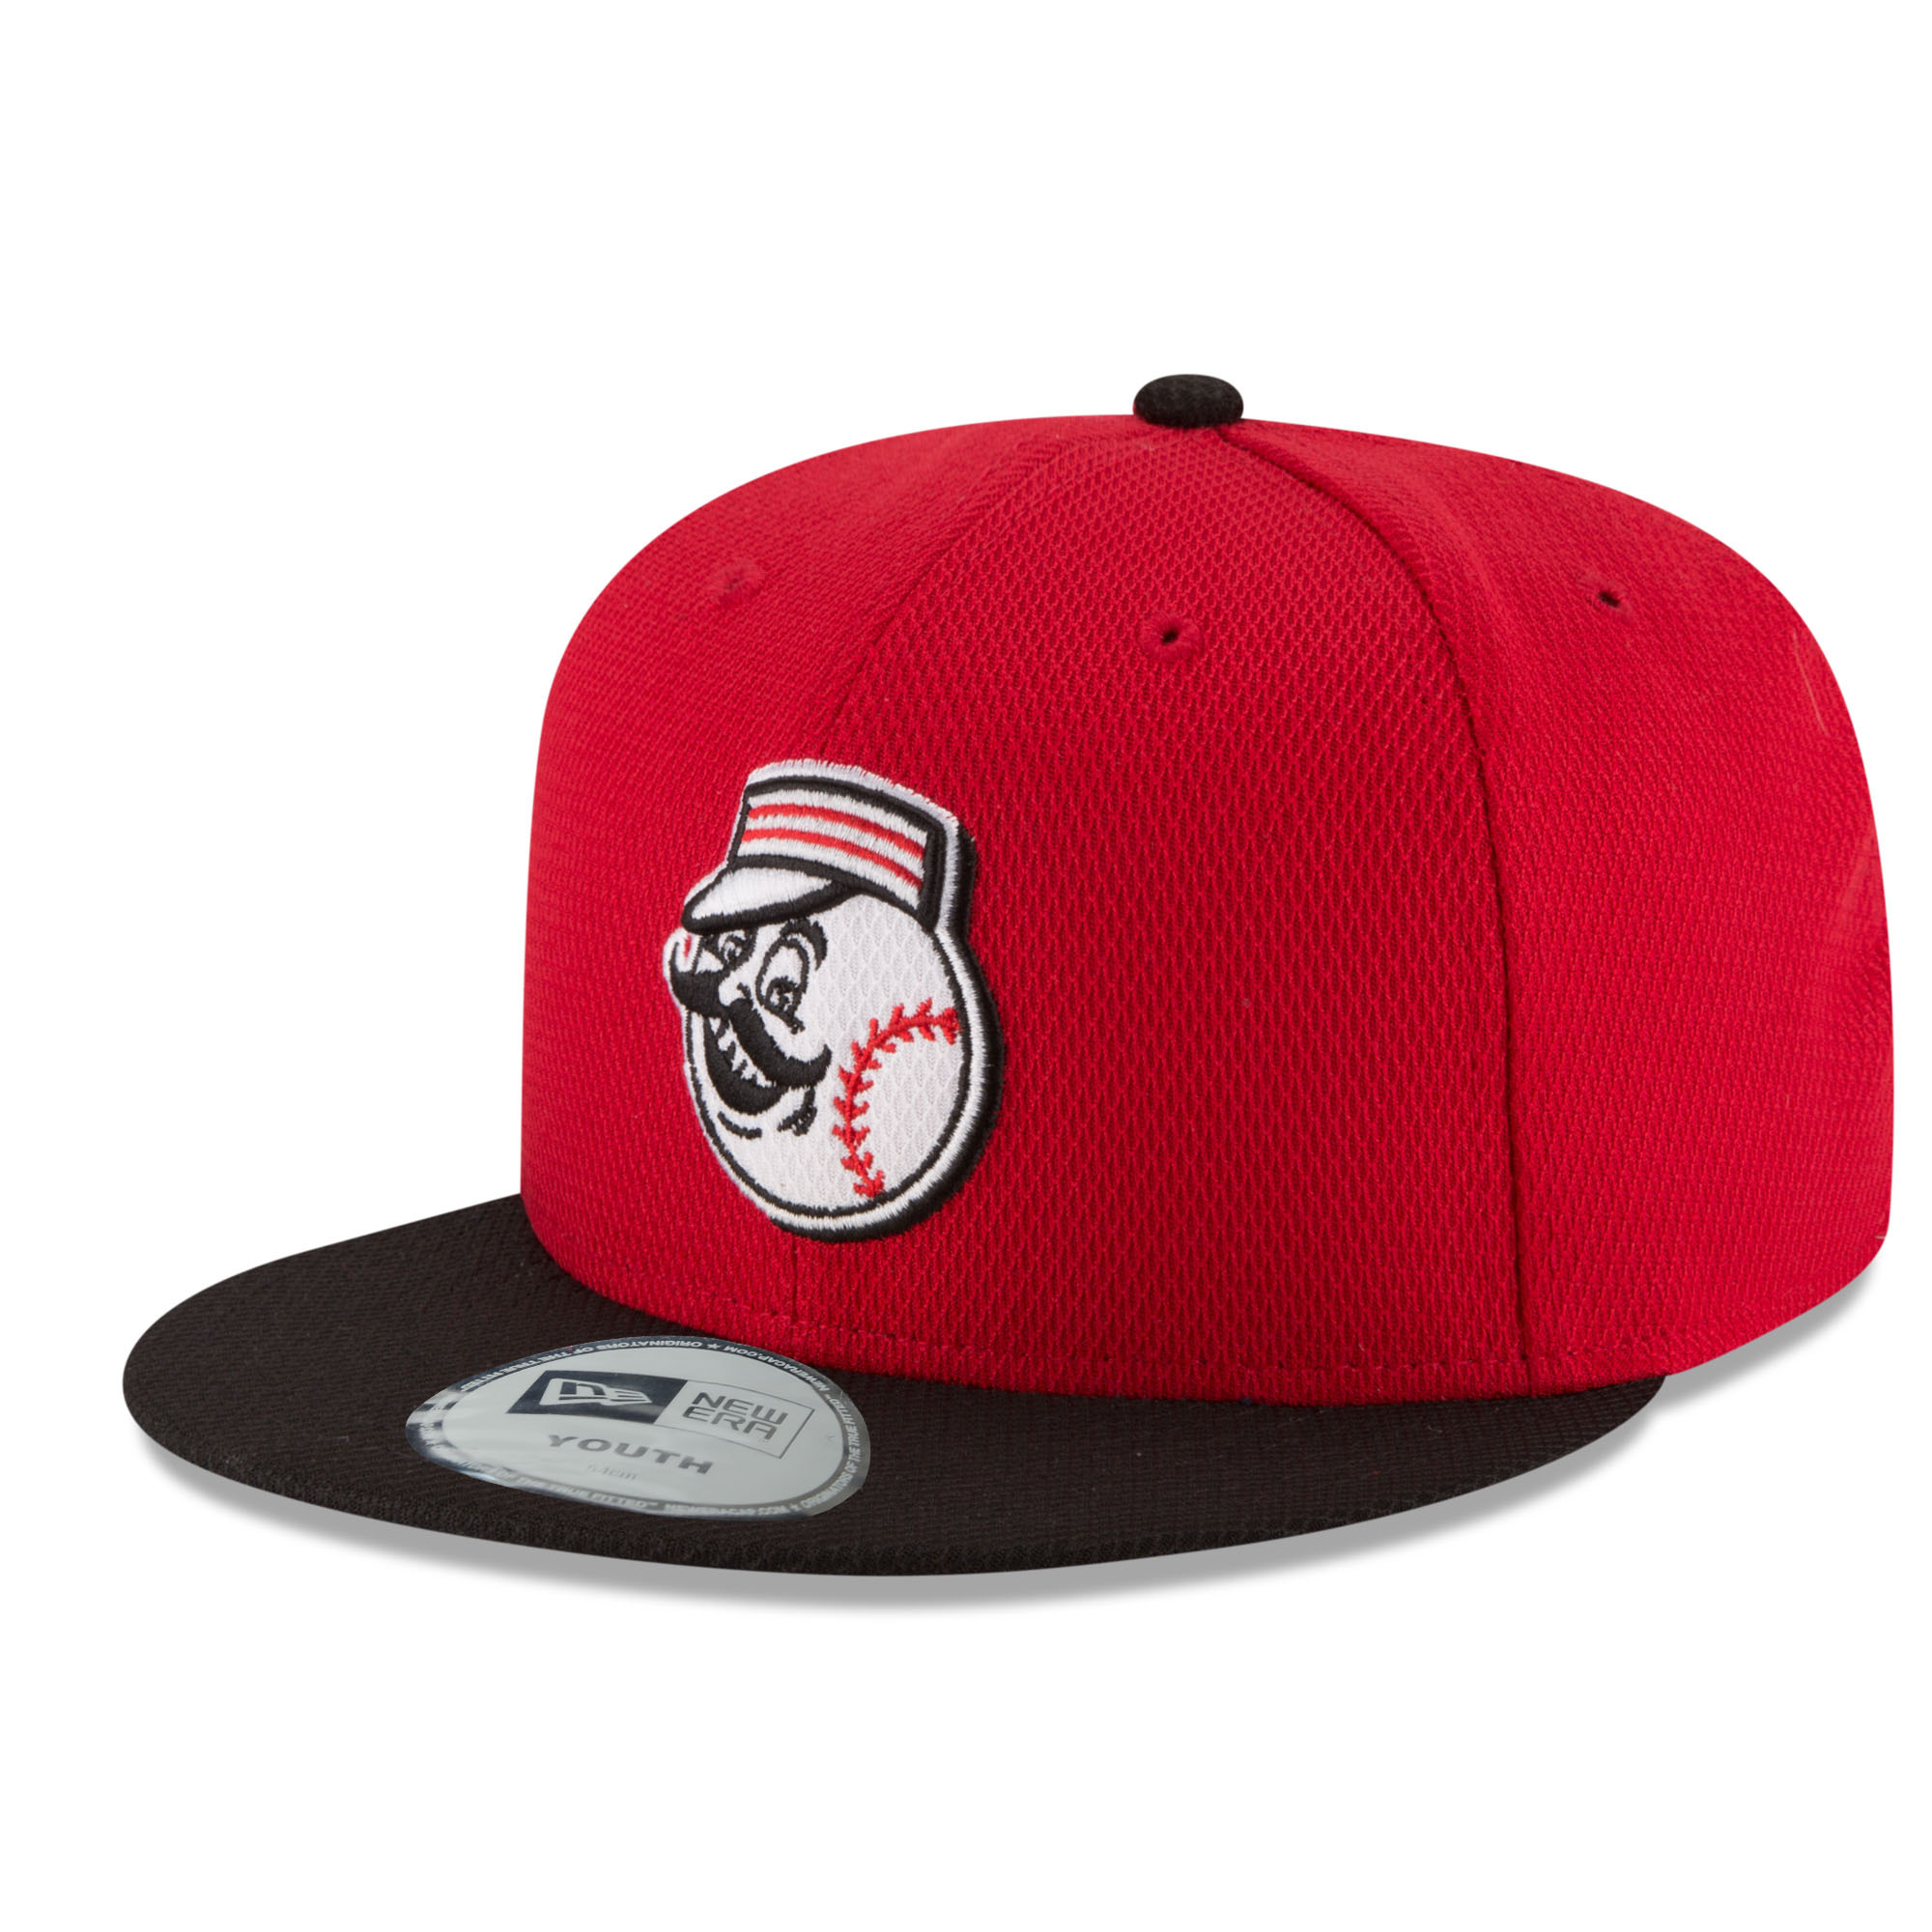 Cincinnati Reds New Era Youth Diamond Era 59FIFTY Fitted Hat - Red/Black